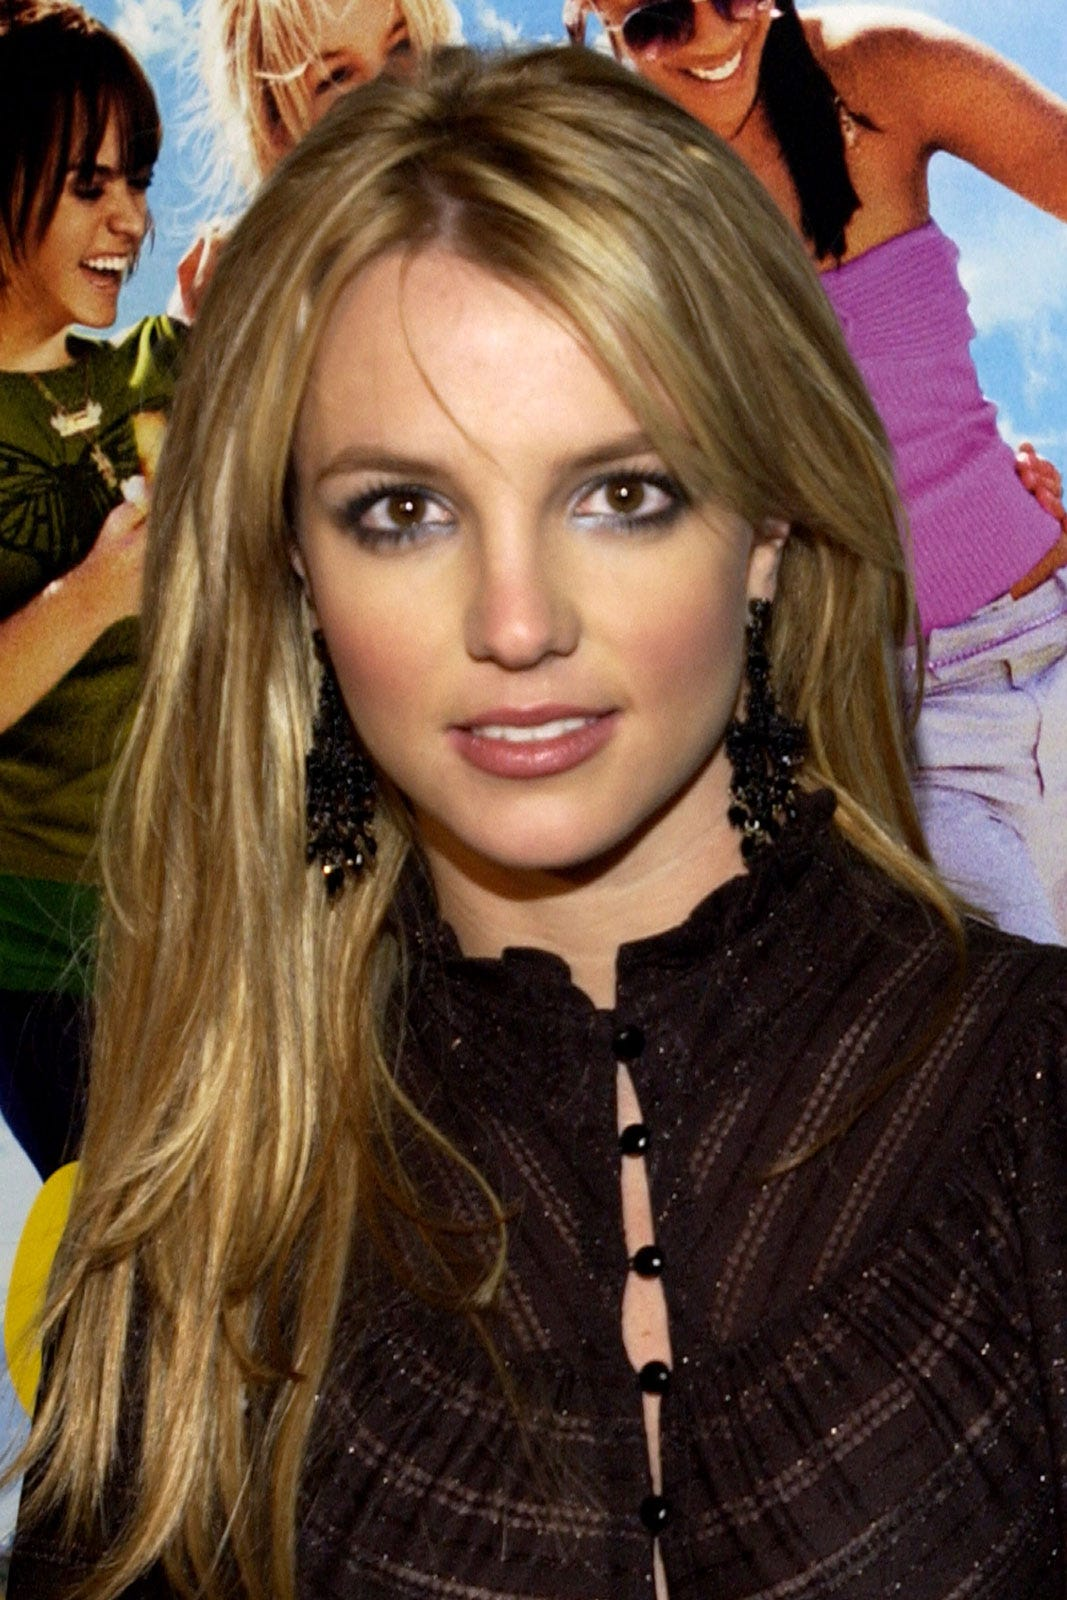 Fashion week Spears Britney new blonde hair color pictures for woman